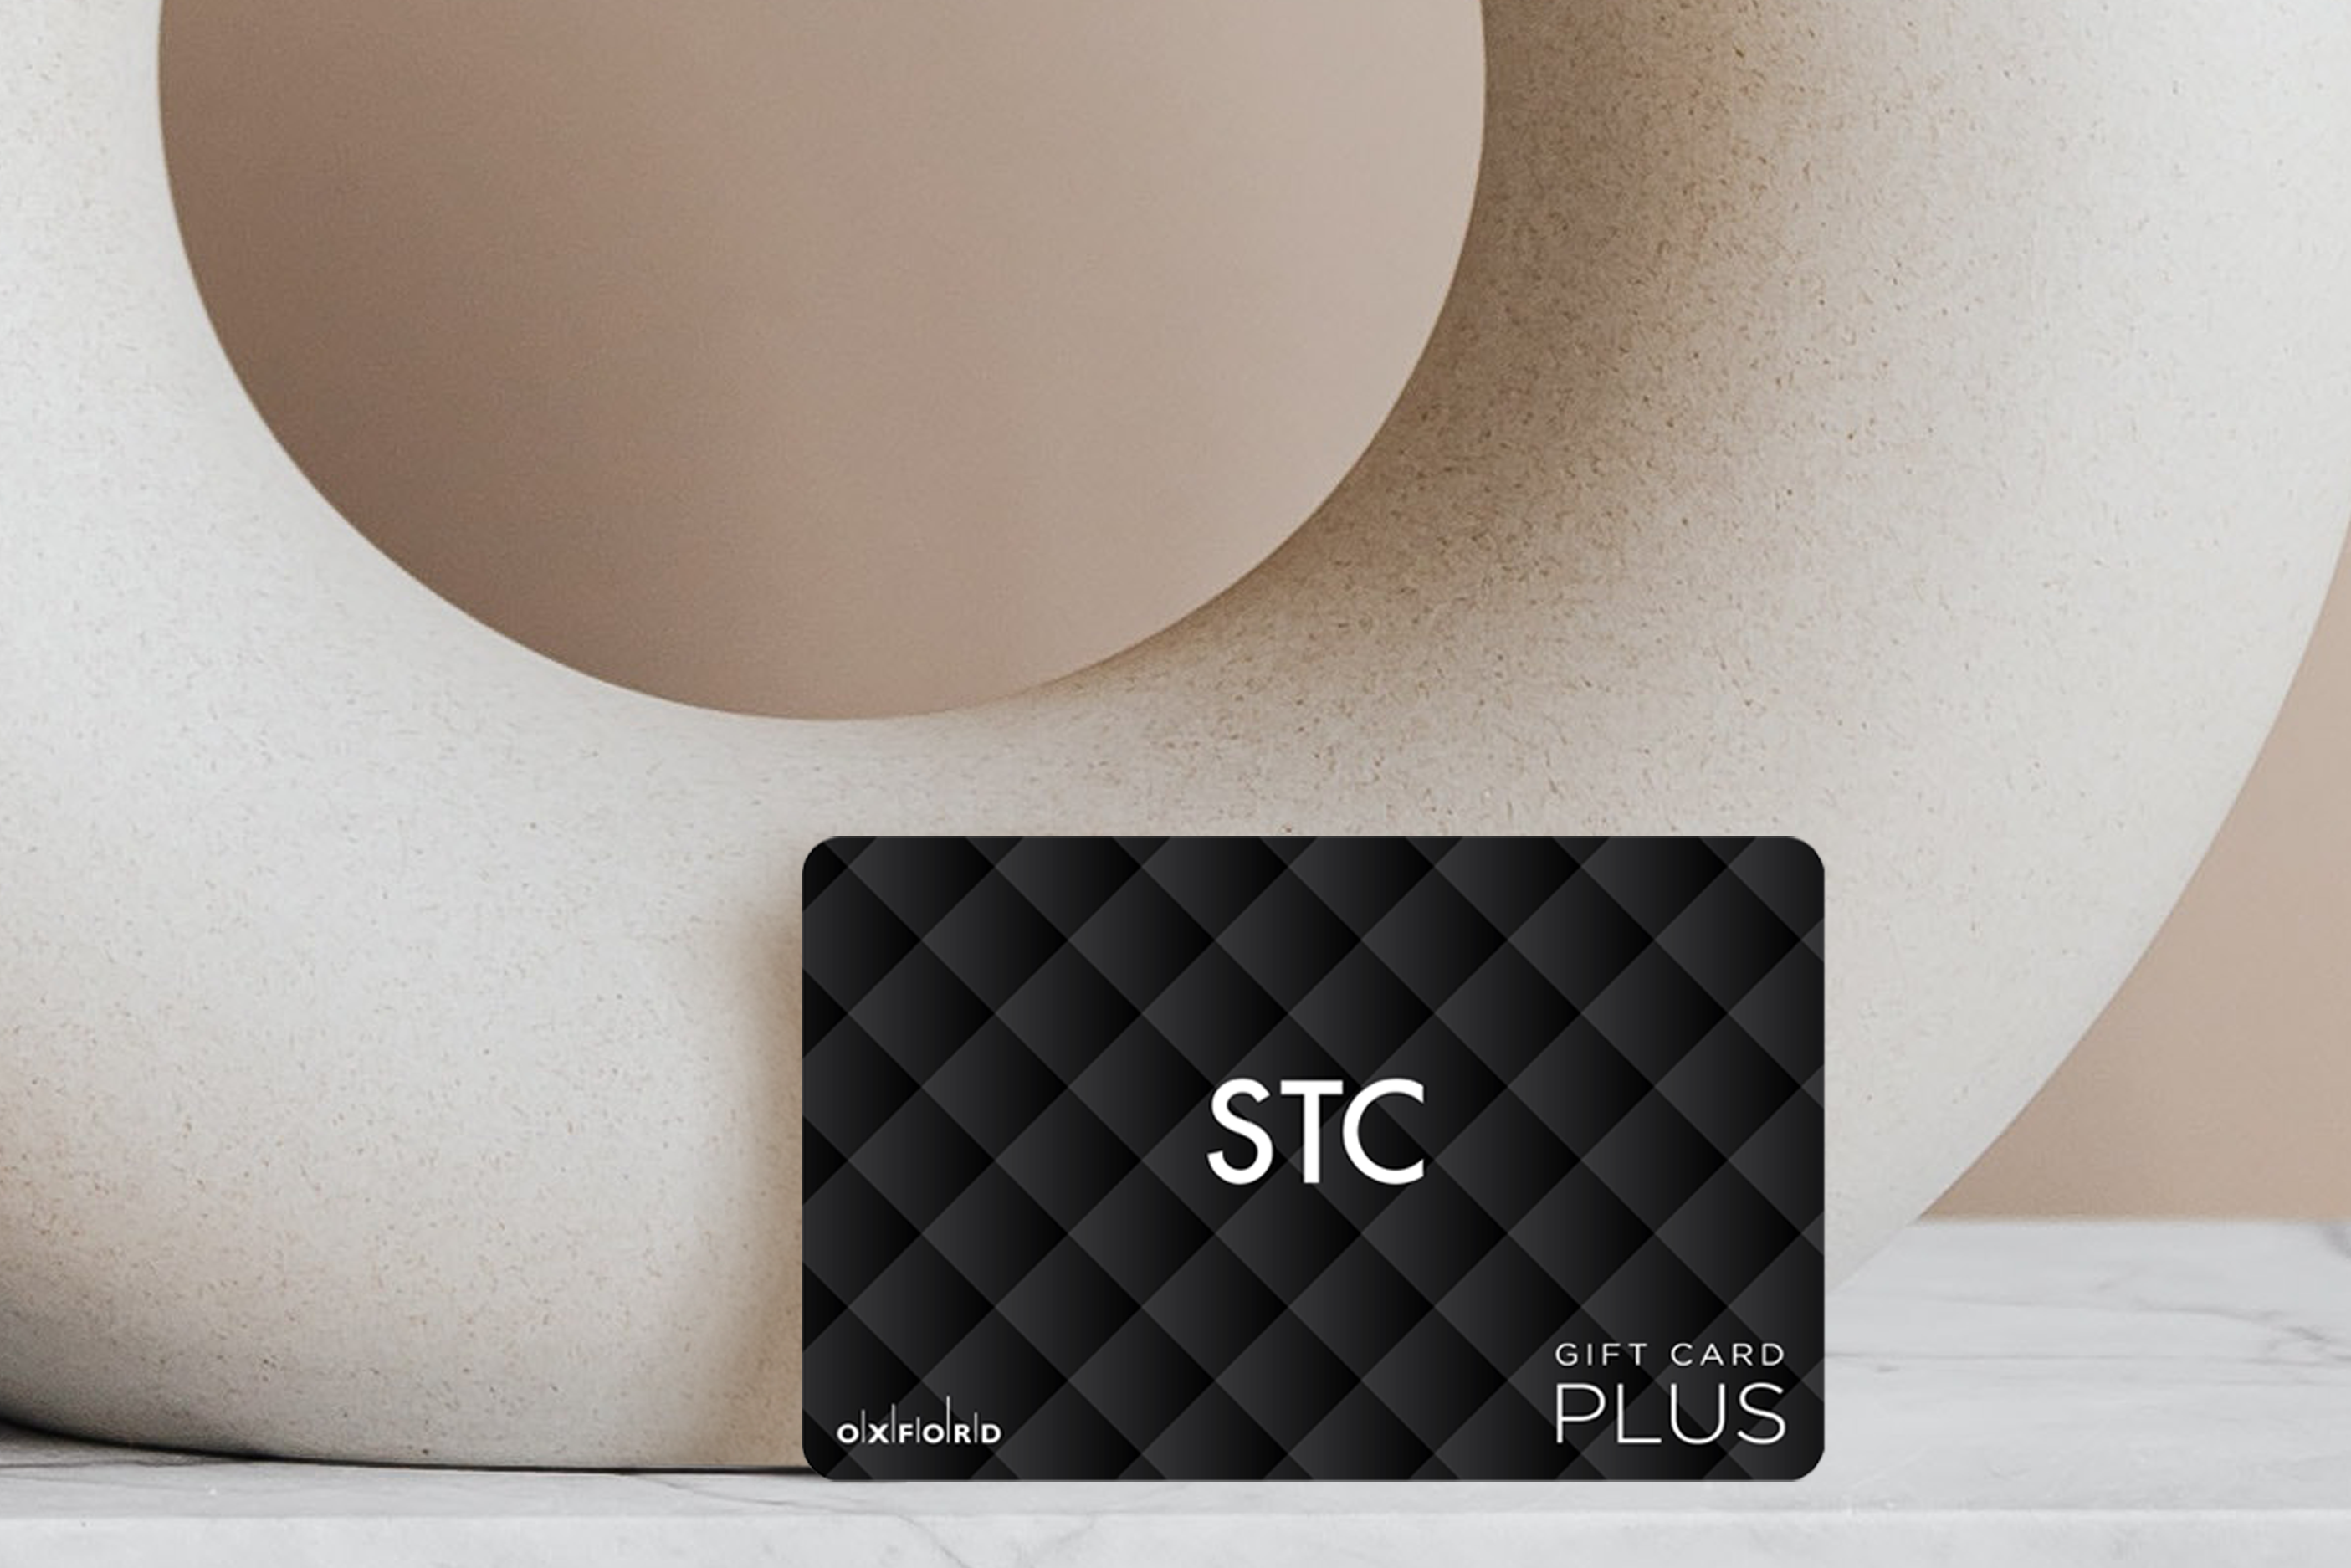 STC Gift Card Leaning on clay Pot